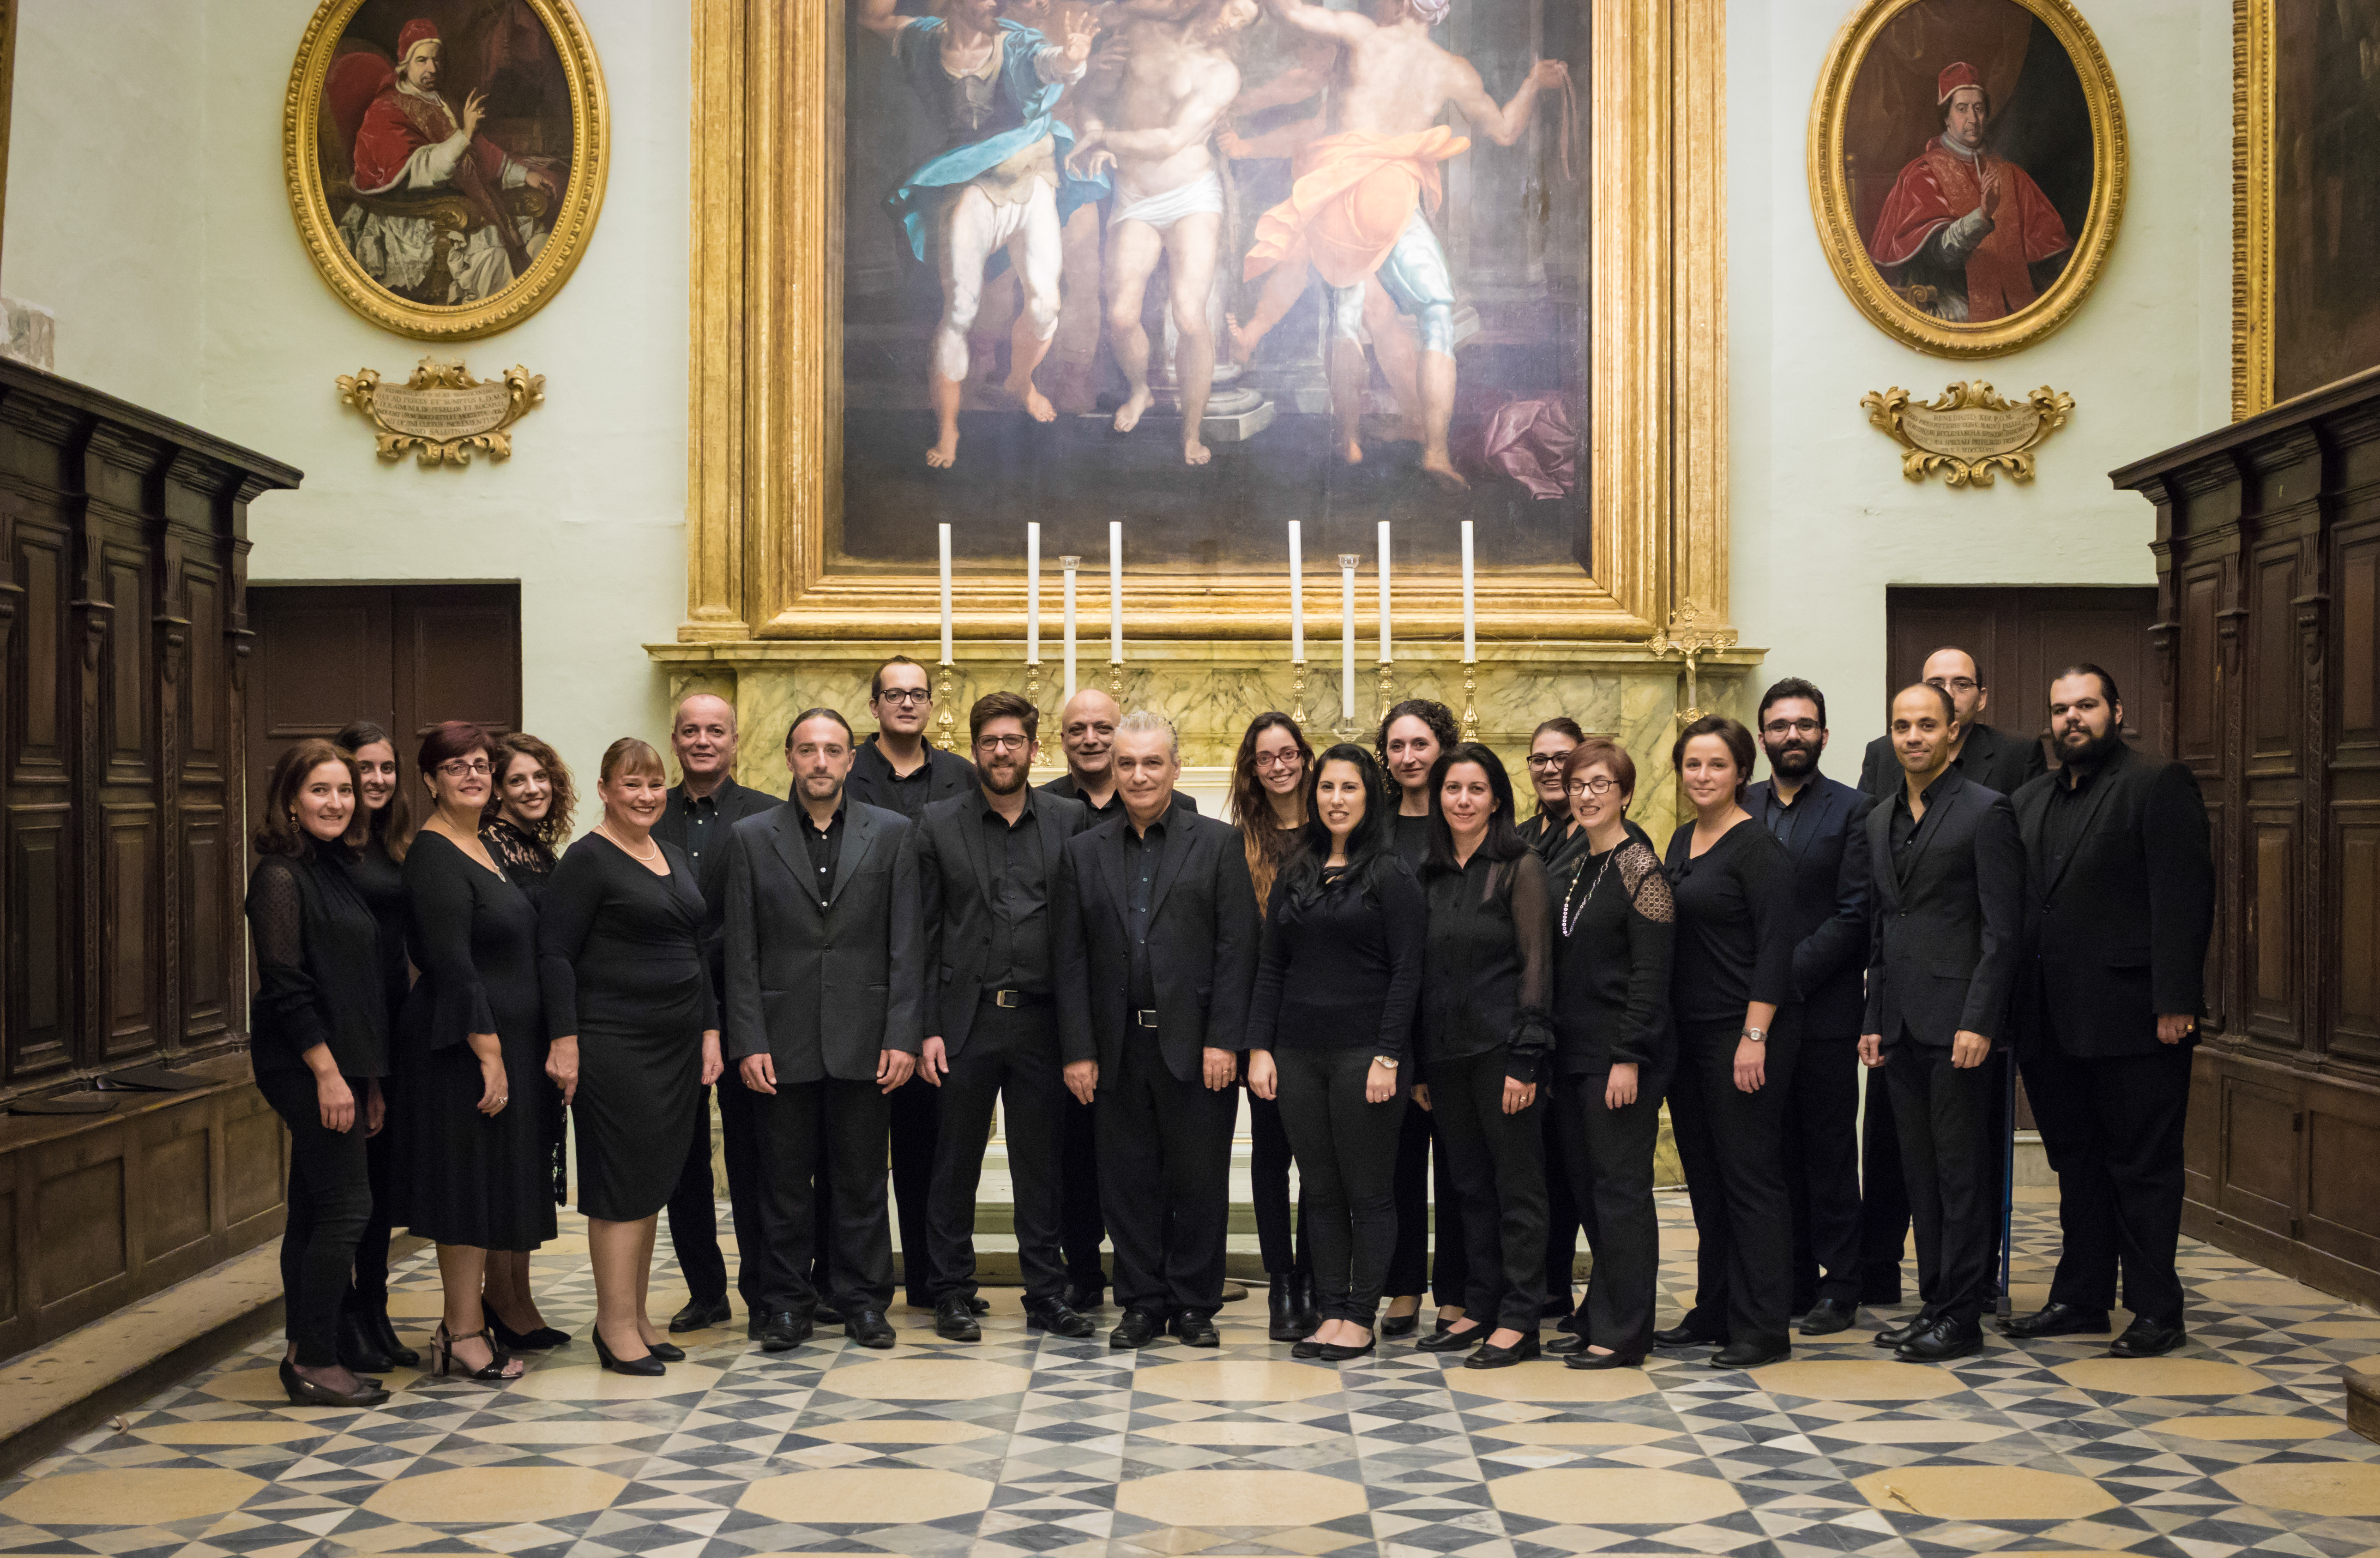 Concert in Aid of the Anglican Cathedral Restoration Fund